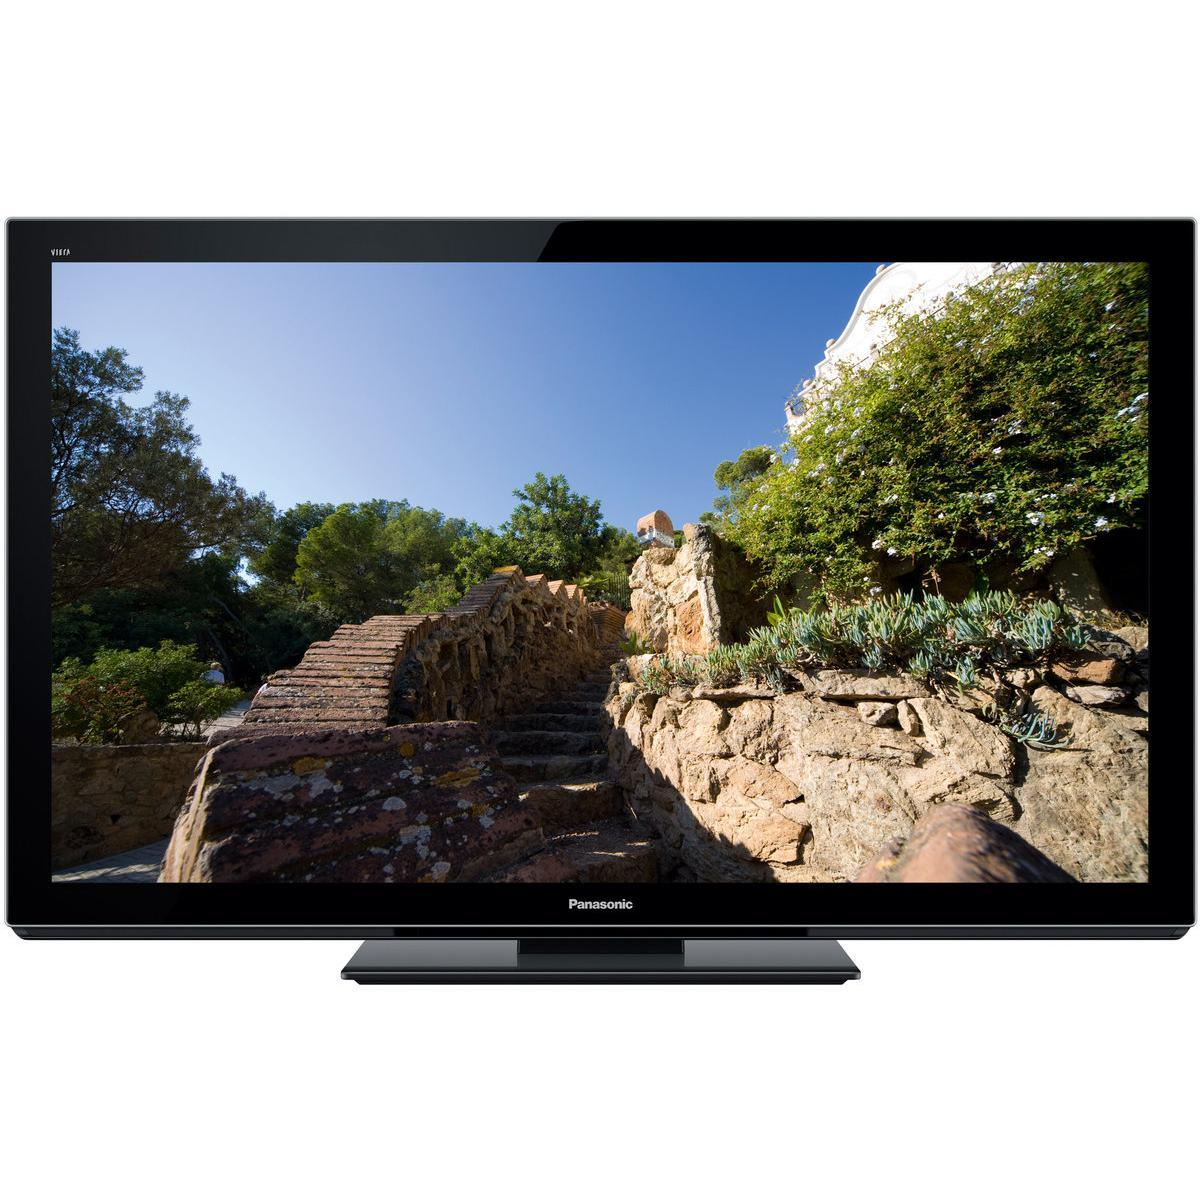 TV Panasonic 3D plasma Full HD 106 cm